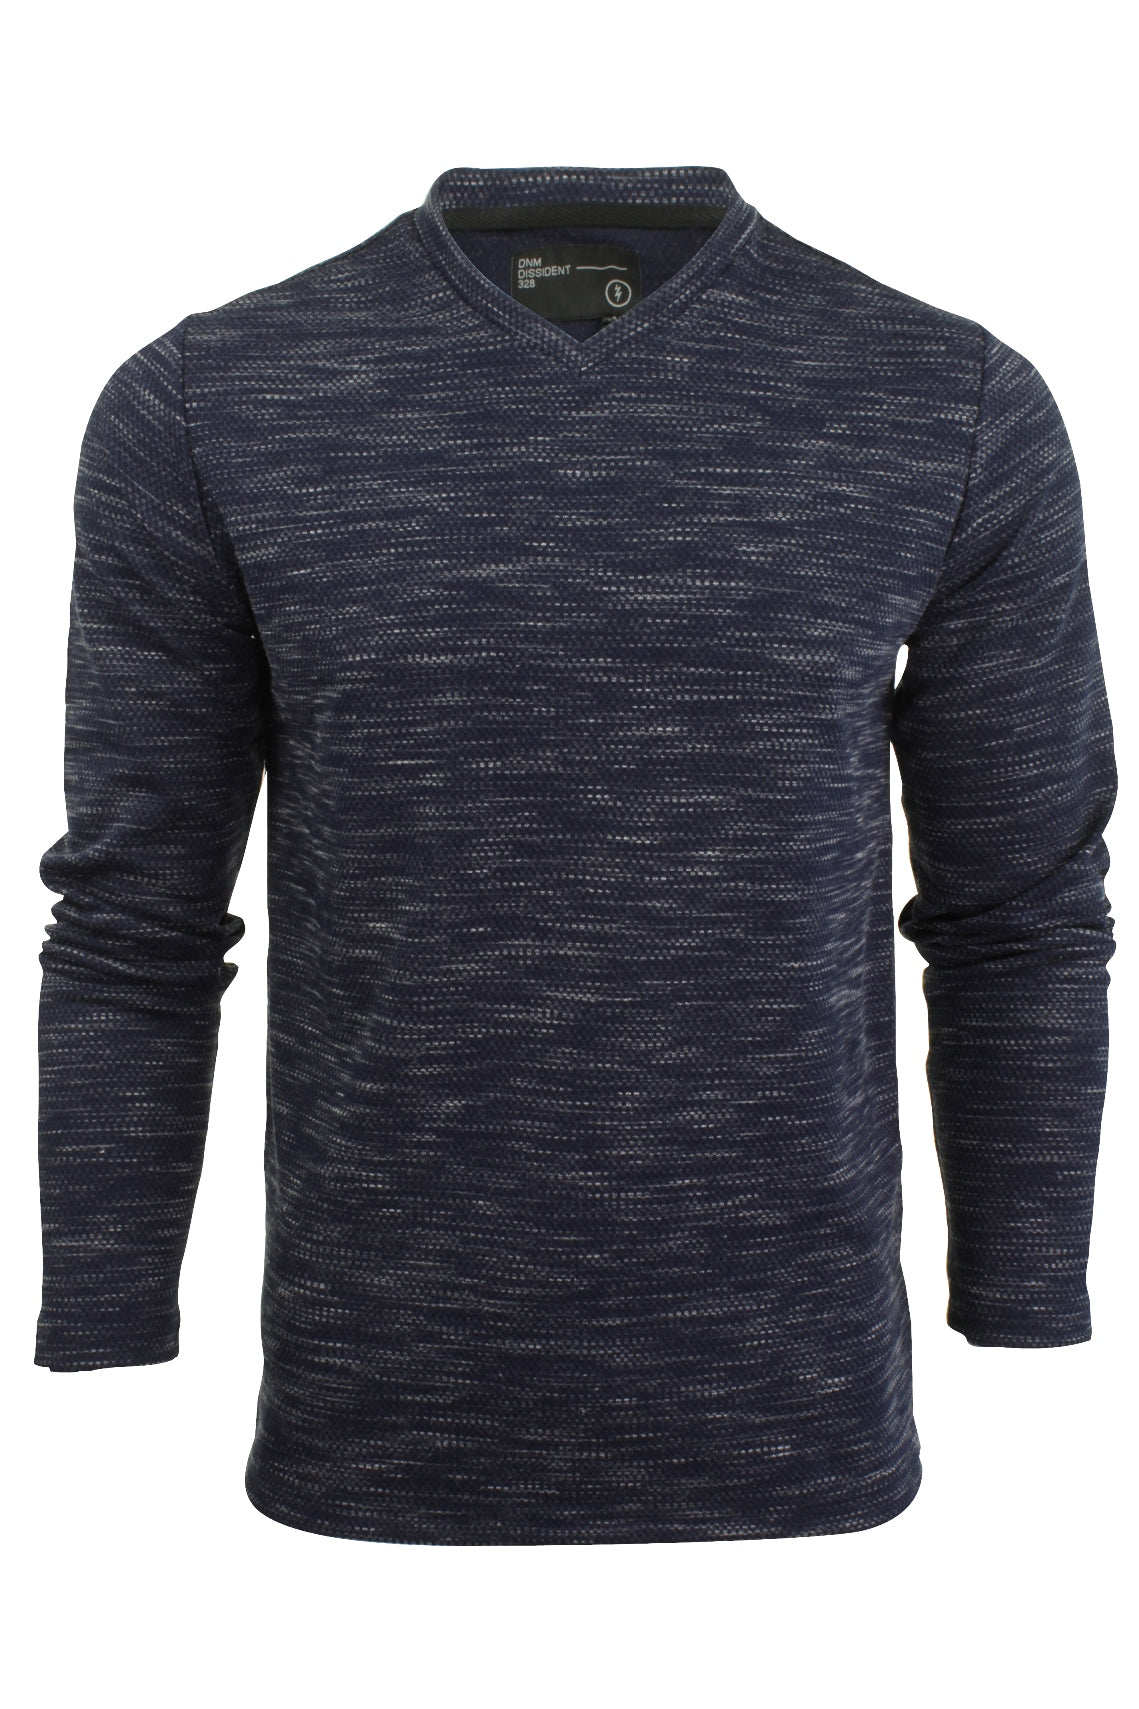 Mens Long Sleeved T-Shirt by Dissident 'Drover' V-Neck-Main Image